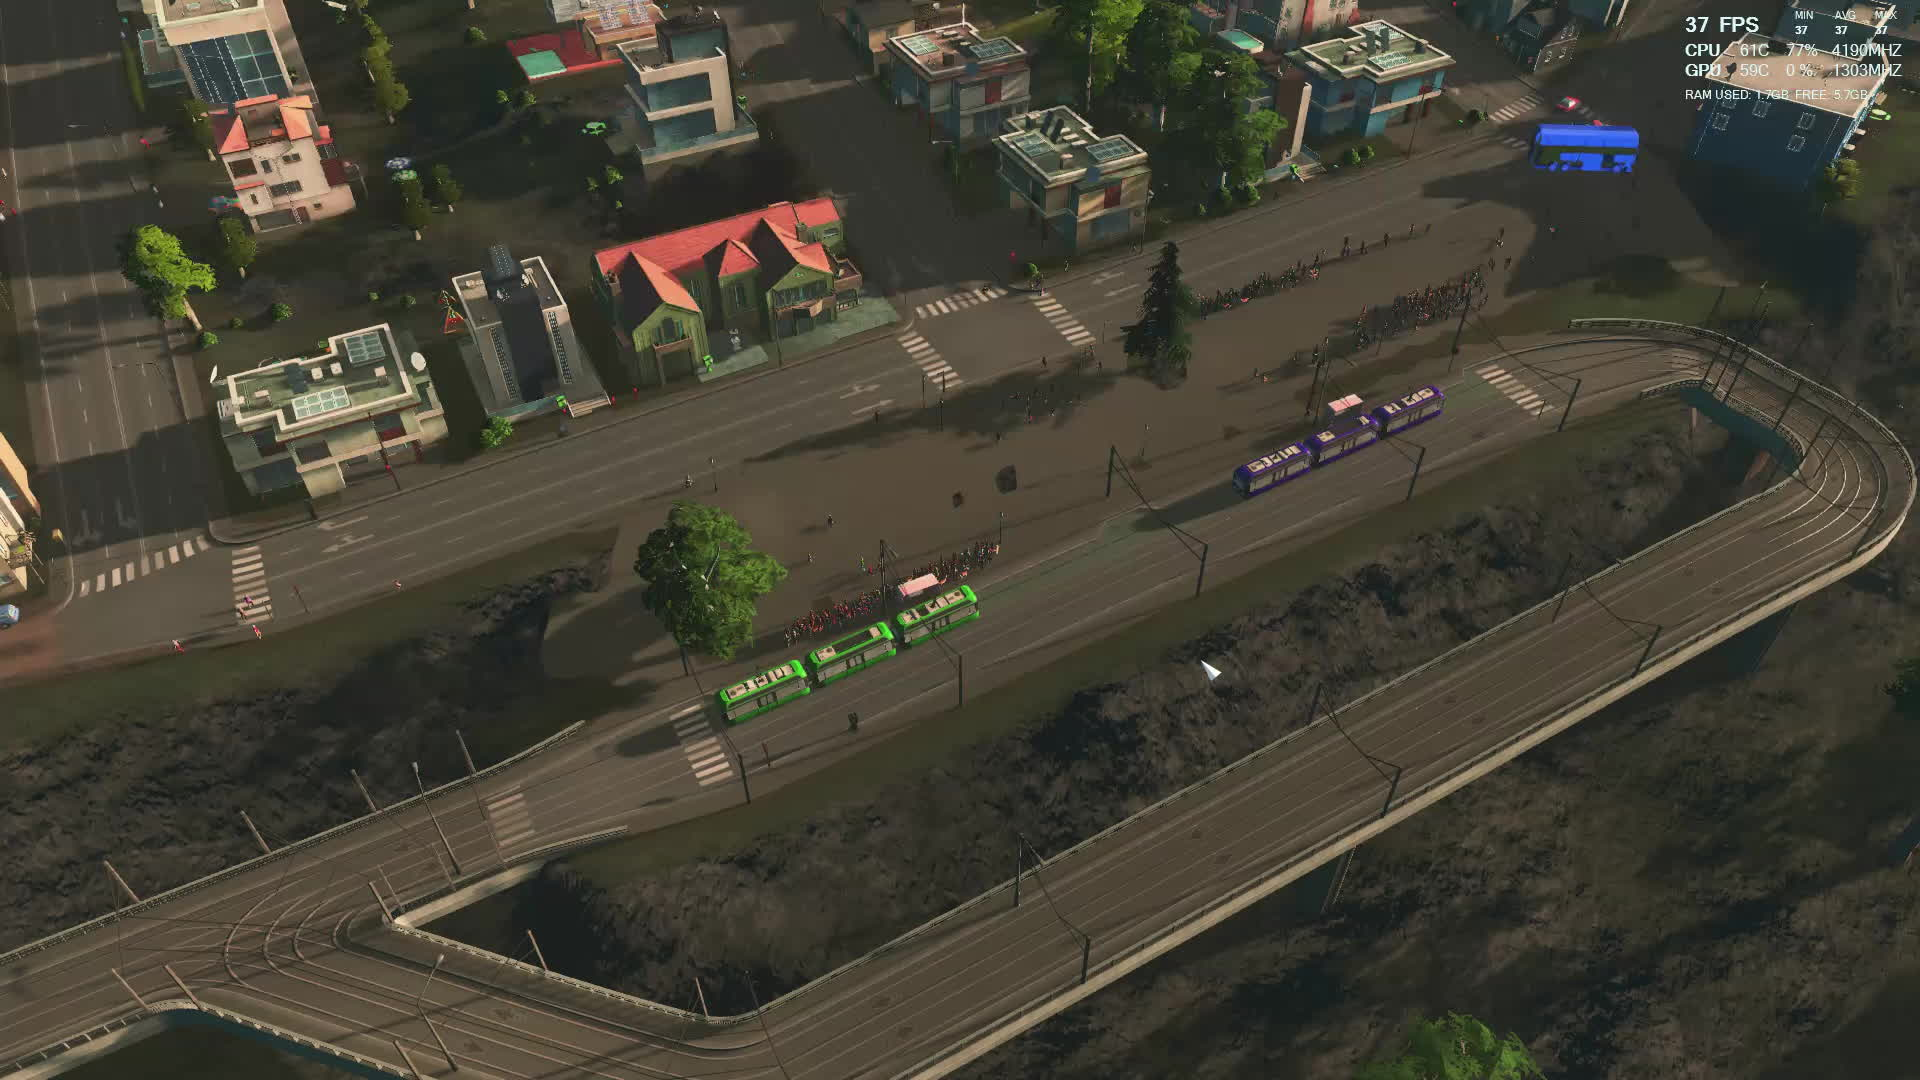 citiesskylines, Lots of people coming to ride tram by bus GIFs